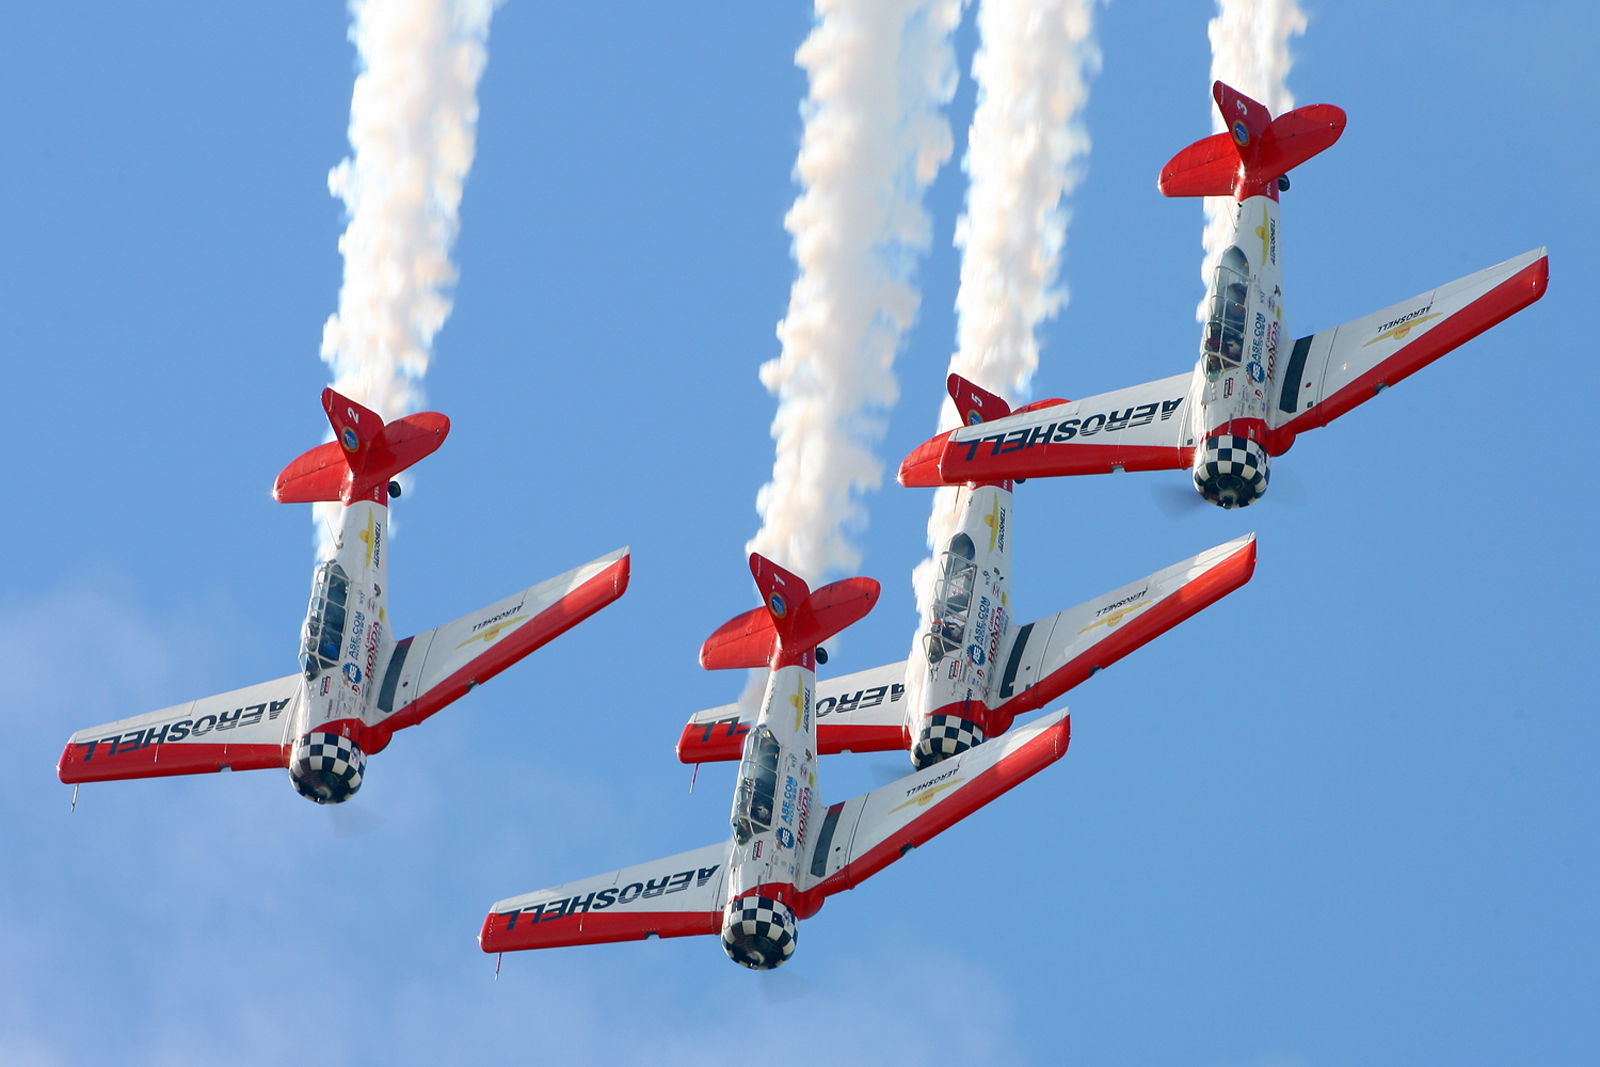 Aeroshell-Aerobatic-Team.jpeg